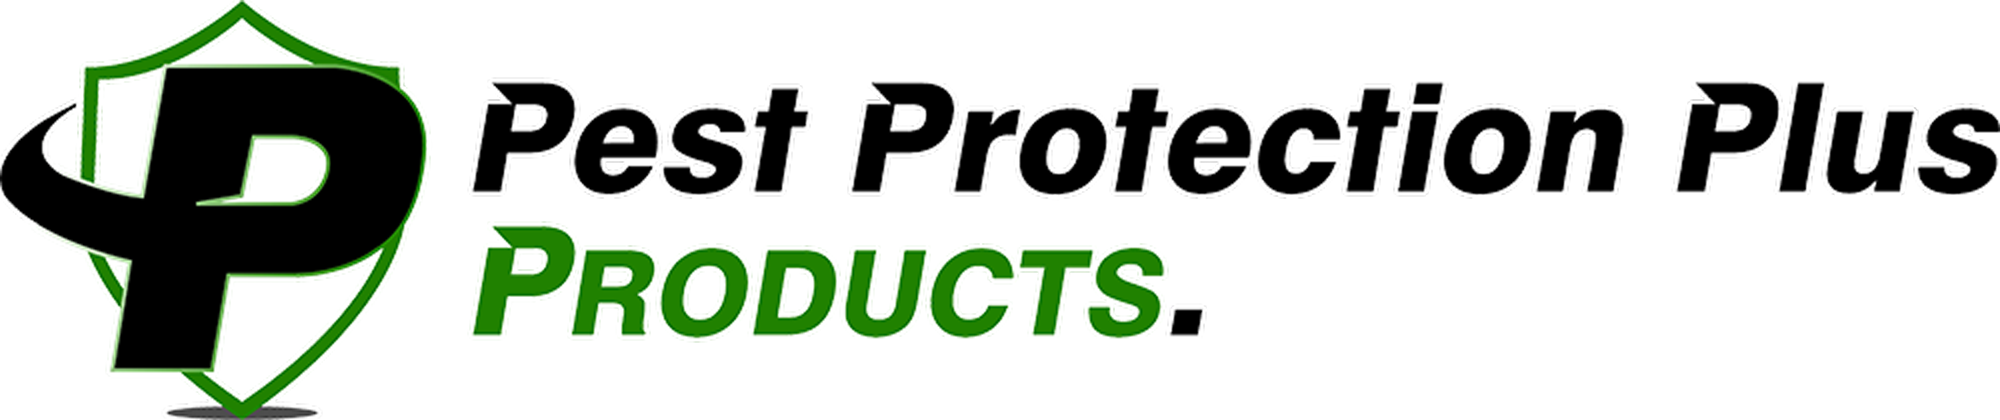 Pest Protection Plus Products